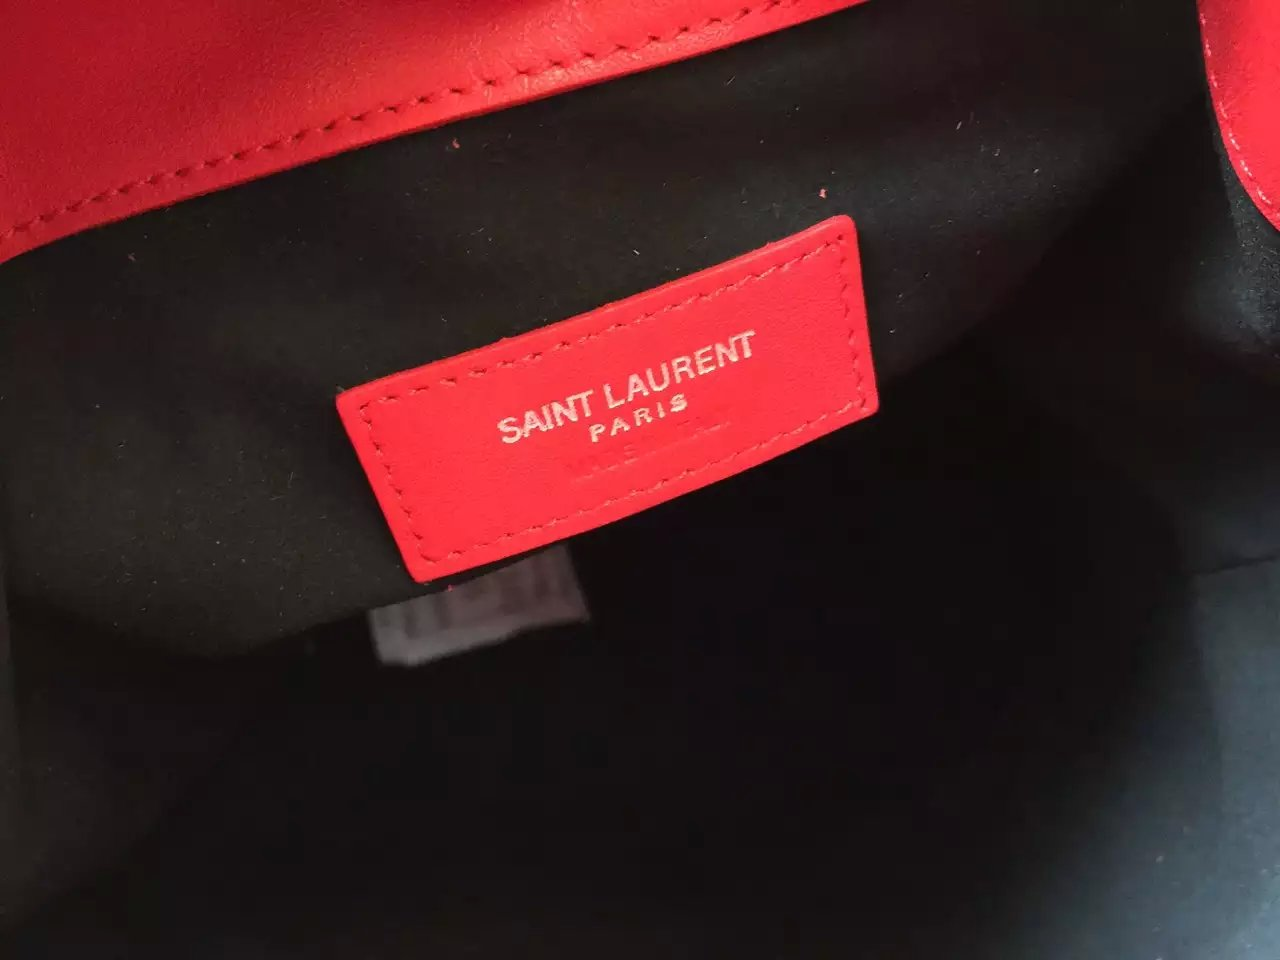 2016 New Saint Laurent Bag Cheap Sale-Saint Laurent Medium Emmanuelle Bucket Bag in Cherry Leather With Zips - Click Image to Close